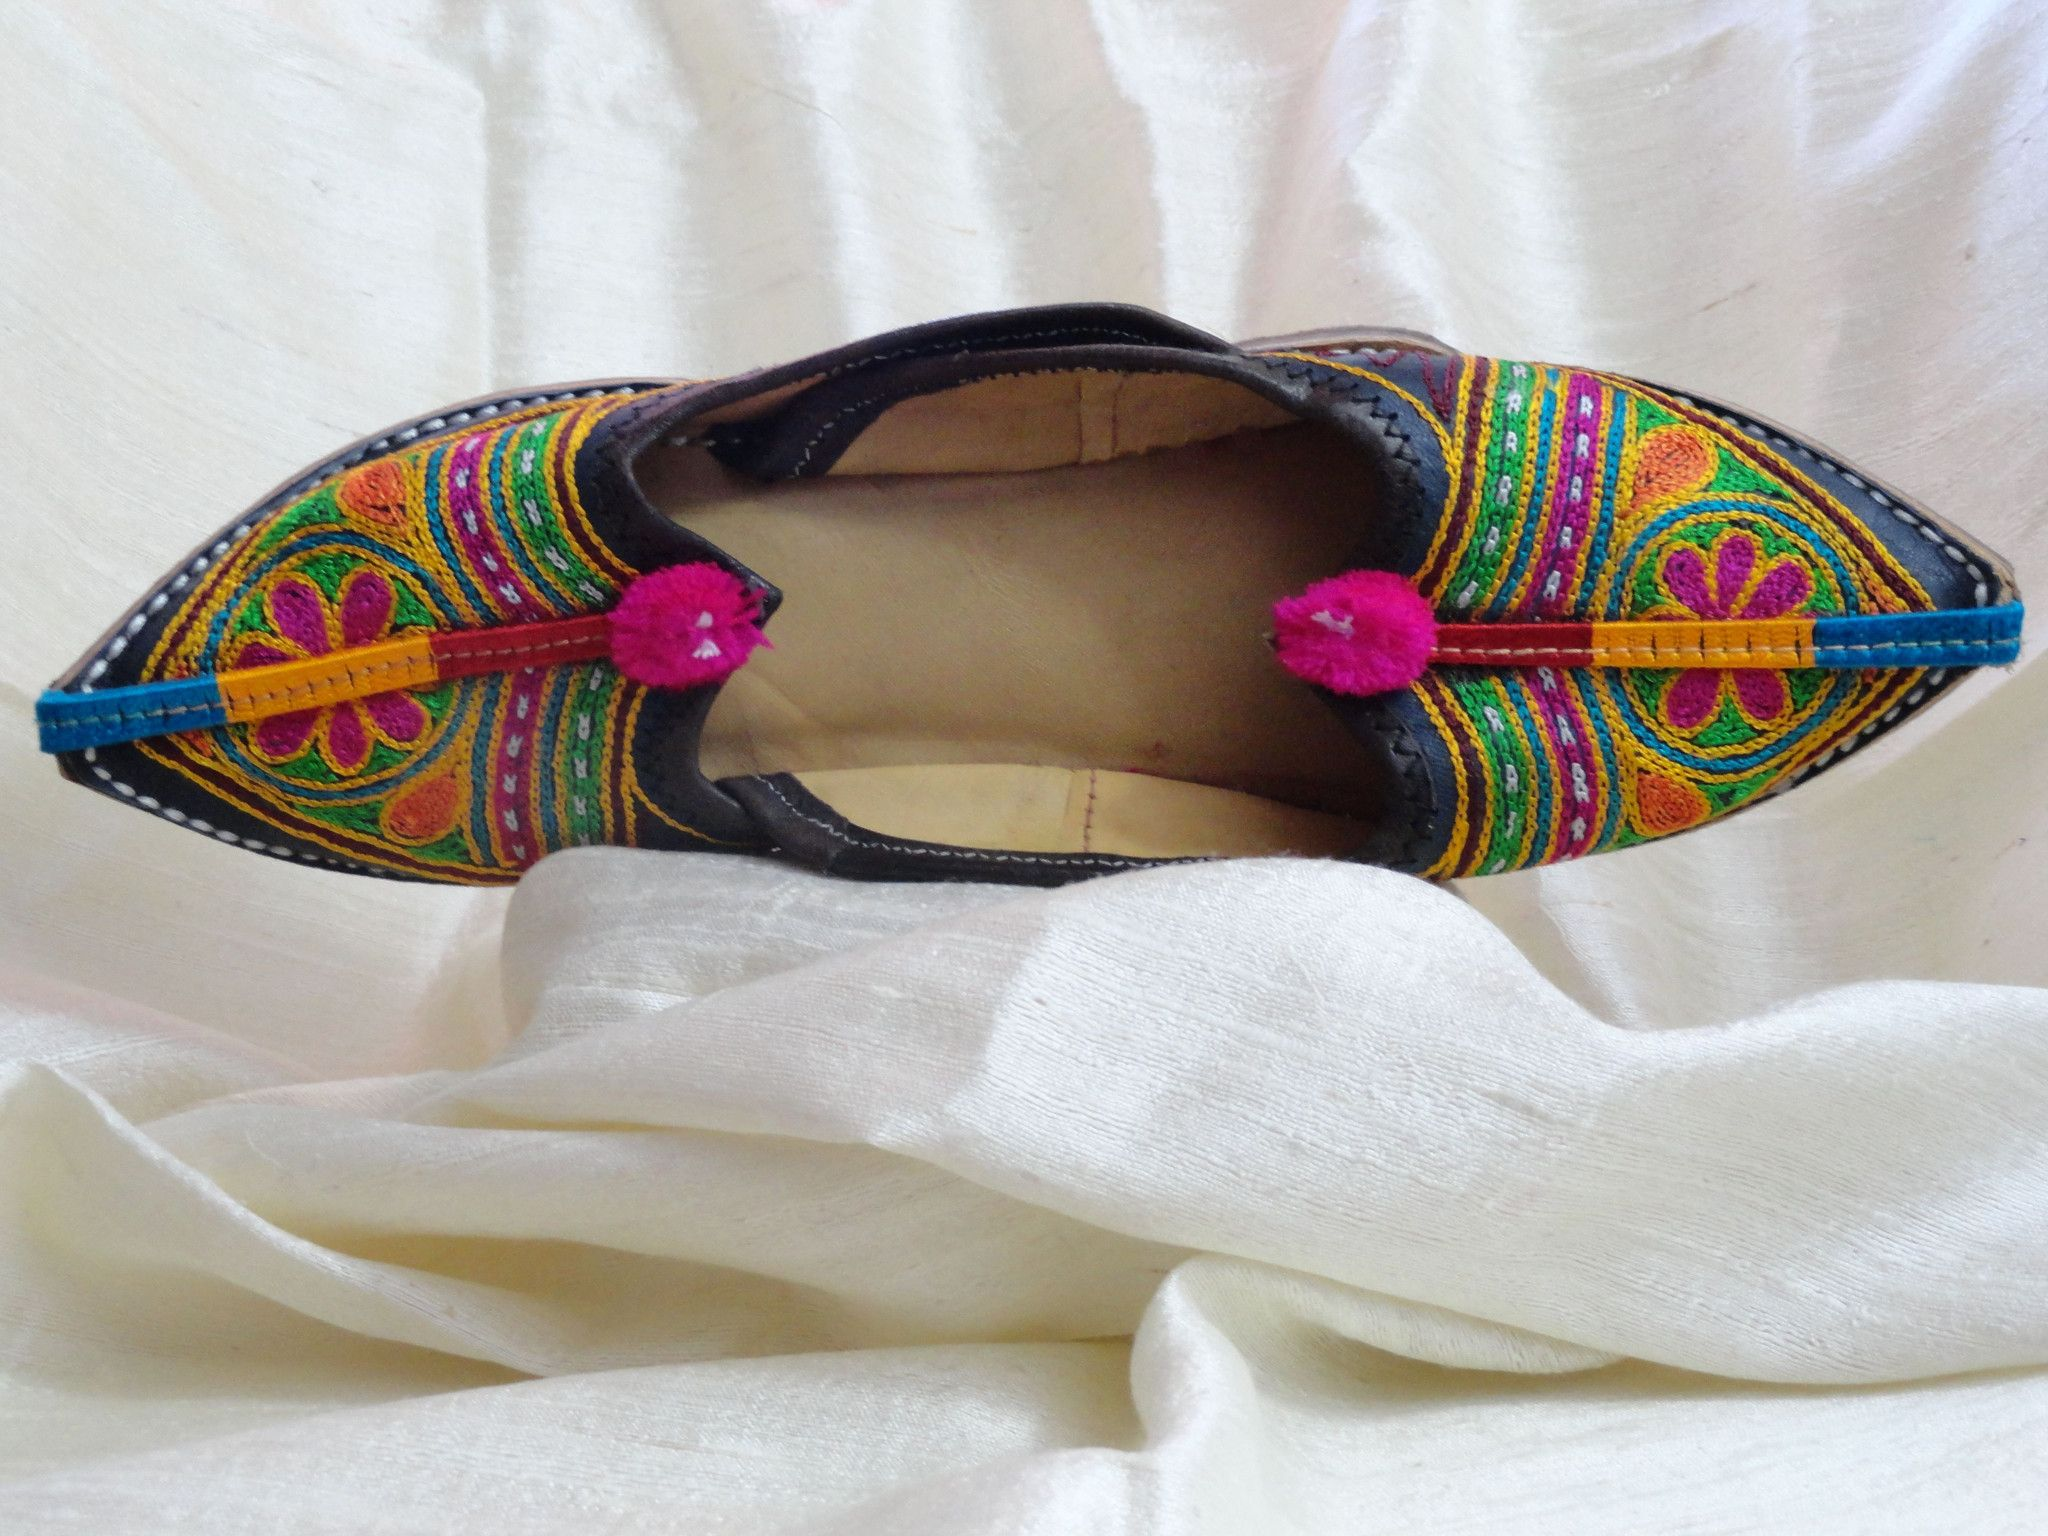 Indian Flat shoes or sandals. Handmade, hand embroidered women's shoes.  Indian Leather Punjabi